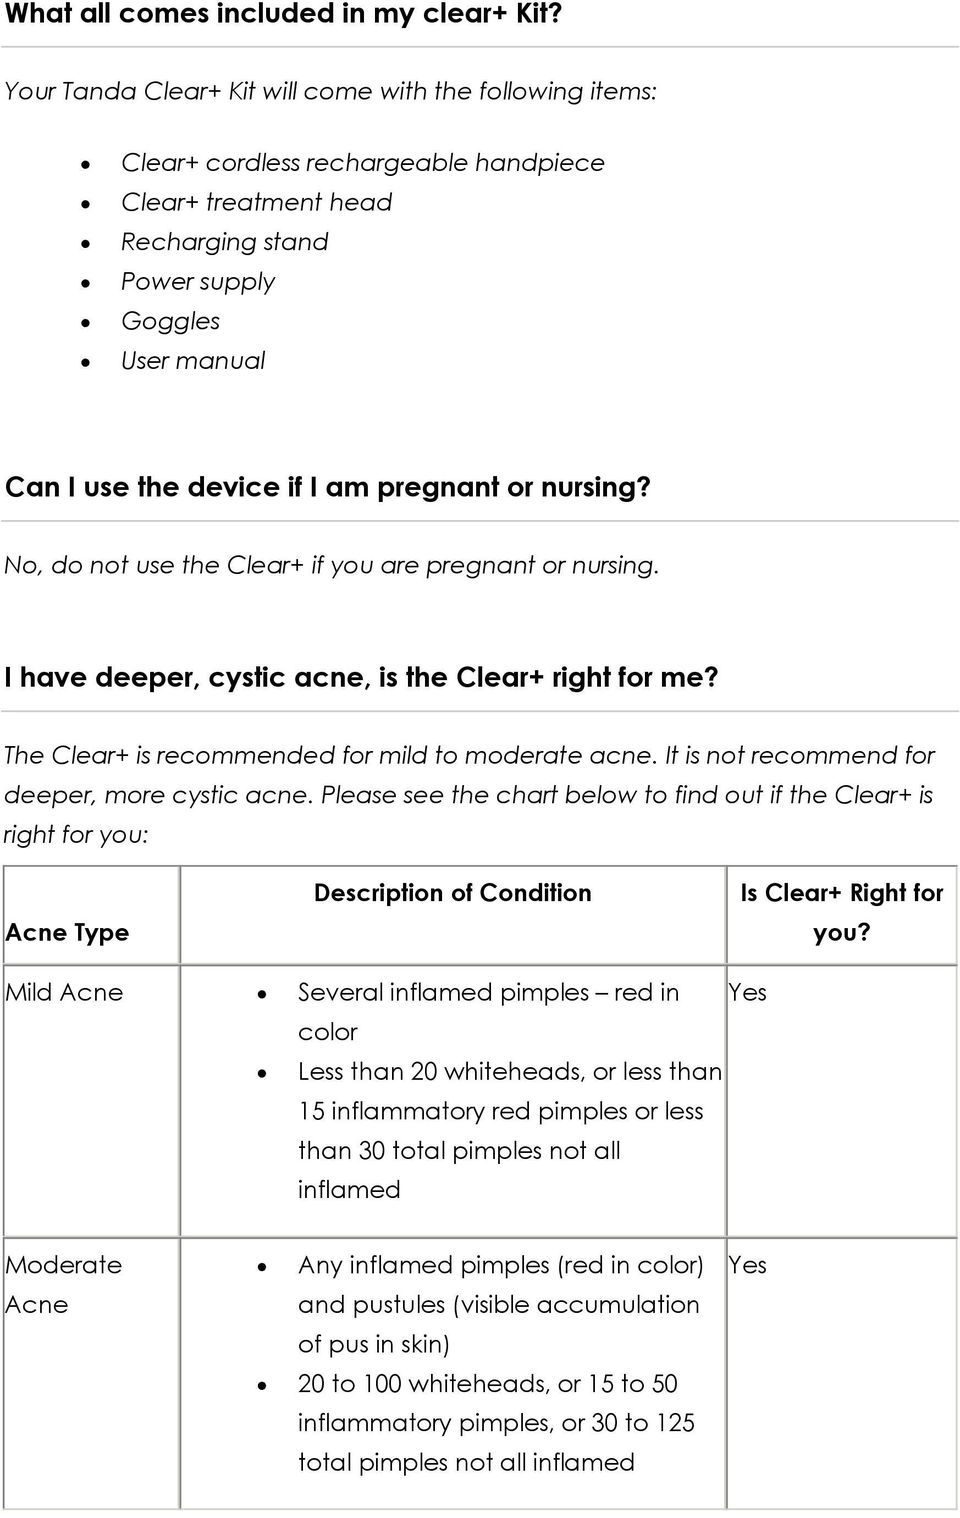 pregnant or nursing? No, do not use the Clear+ if you are pregnant or nursing. I have deeper, cystic acne, is the Clear+ right for me? The Clear+ is recommended for mild to moderate acne.